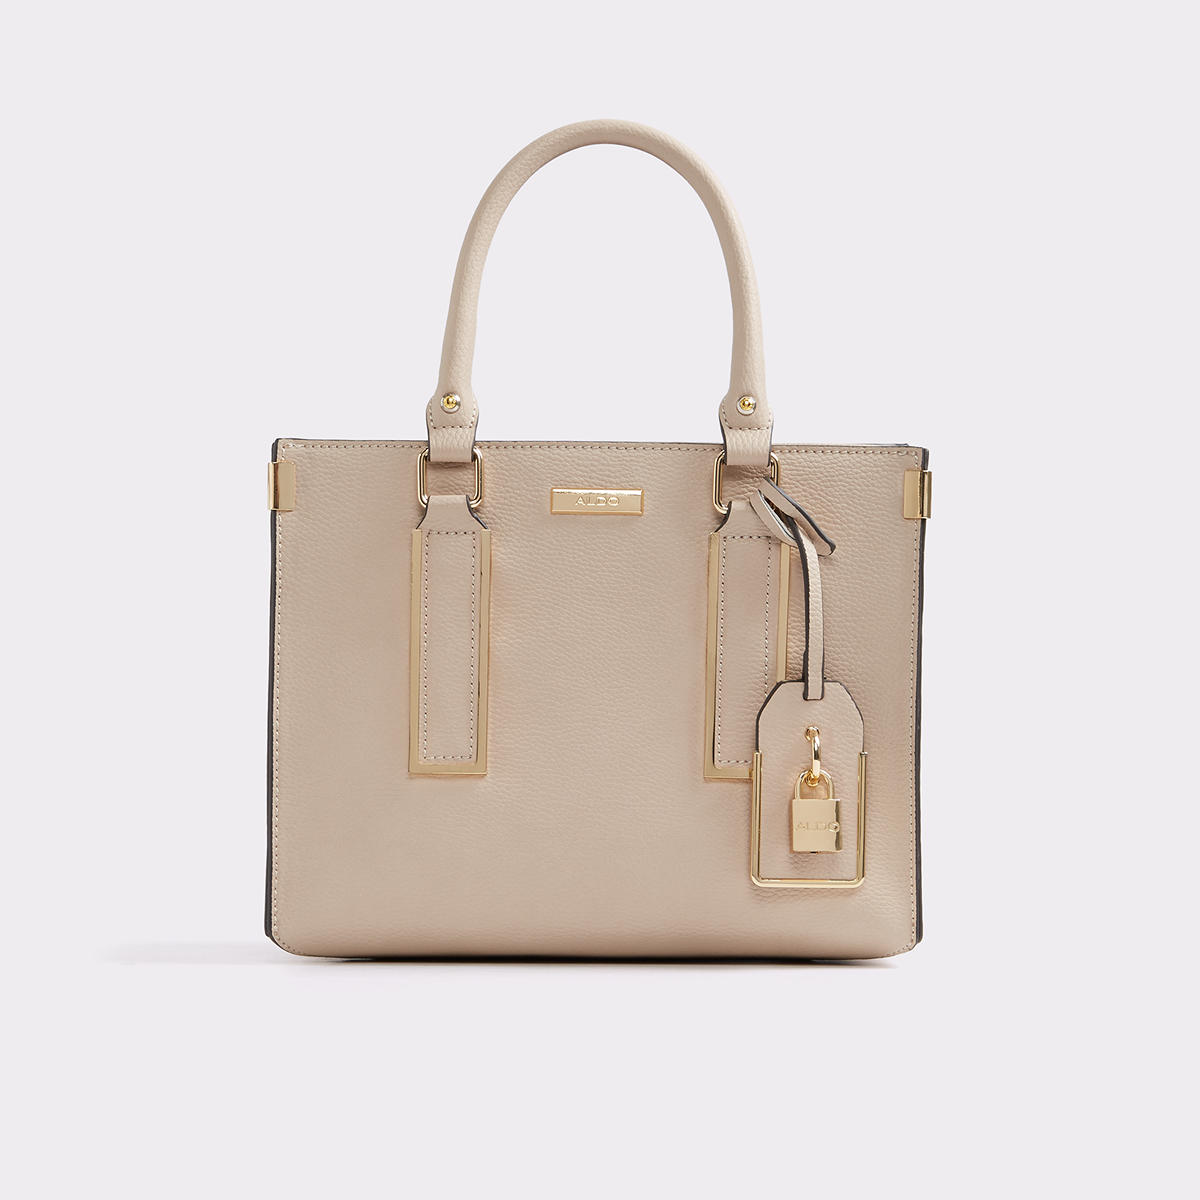 Thalessi Taupe Women's Totes | ALDO US at Aldo Shoes in Victor, NY | Tuggl